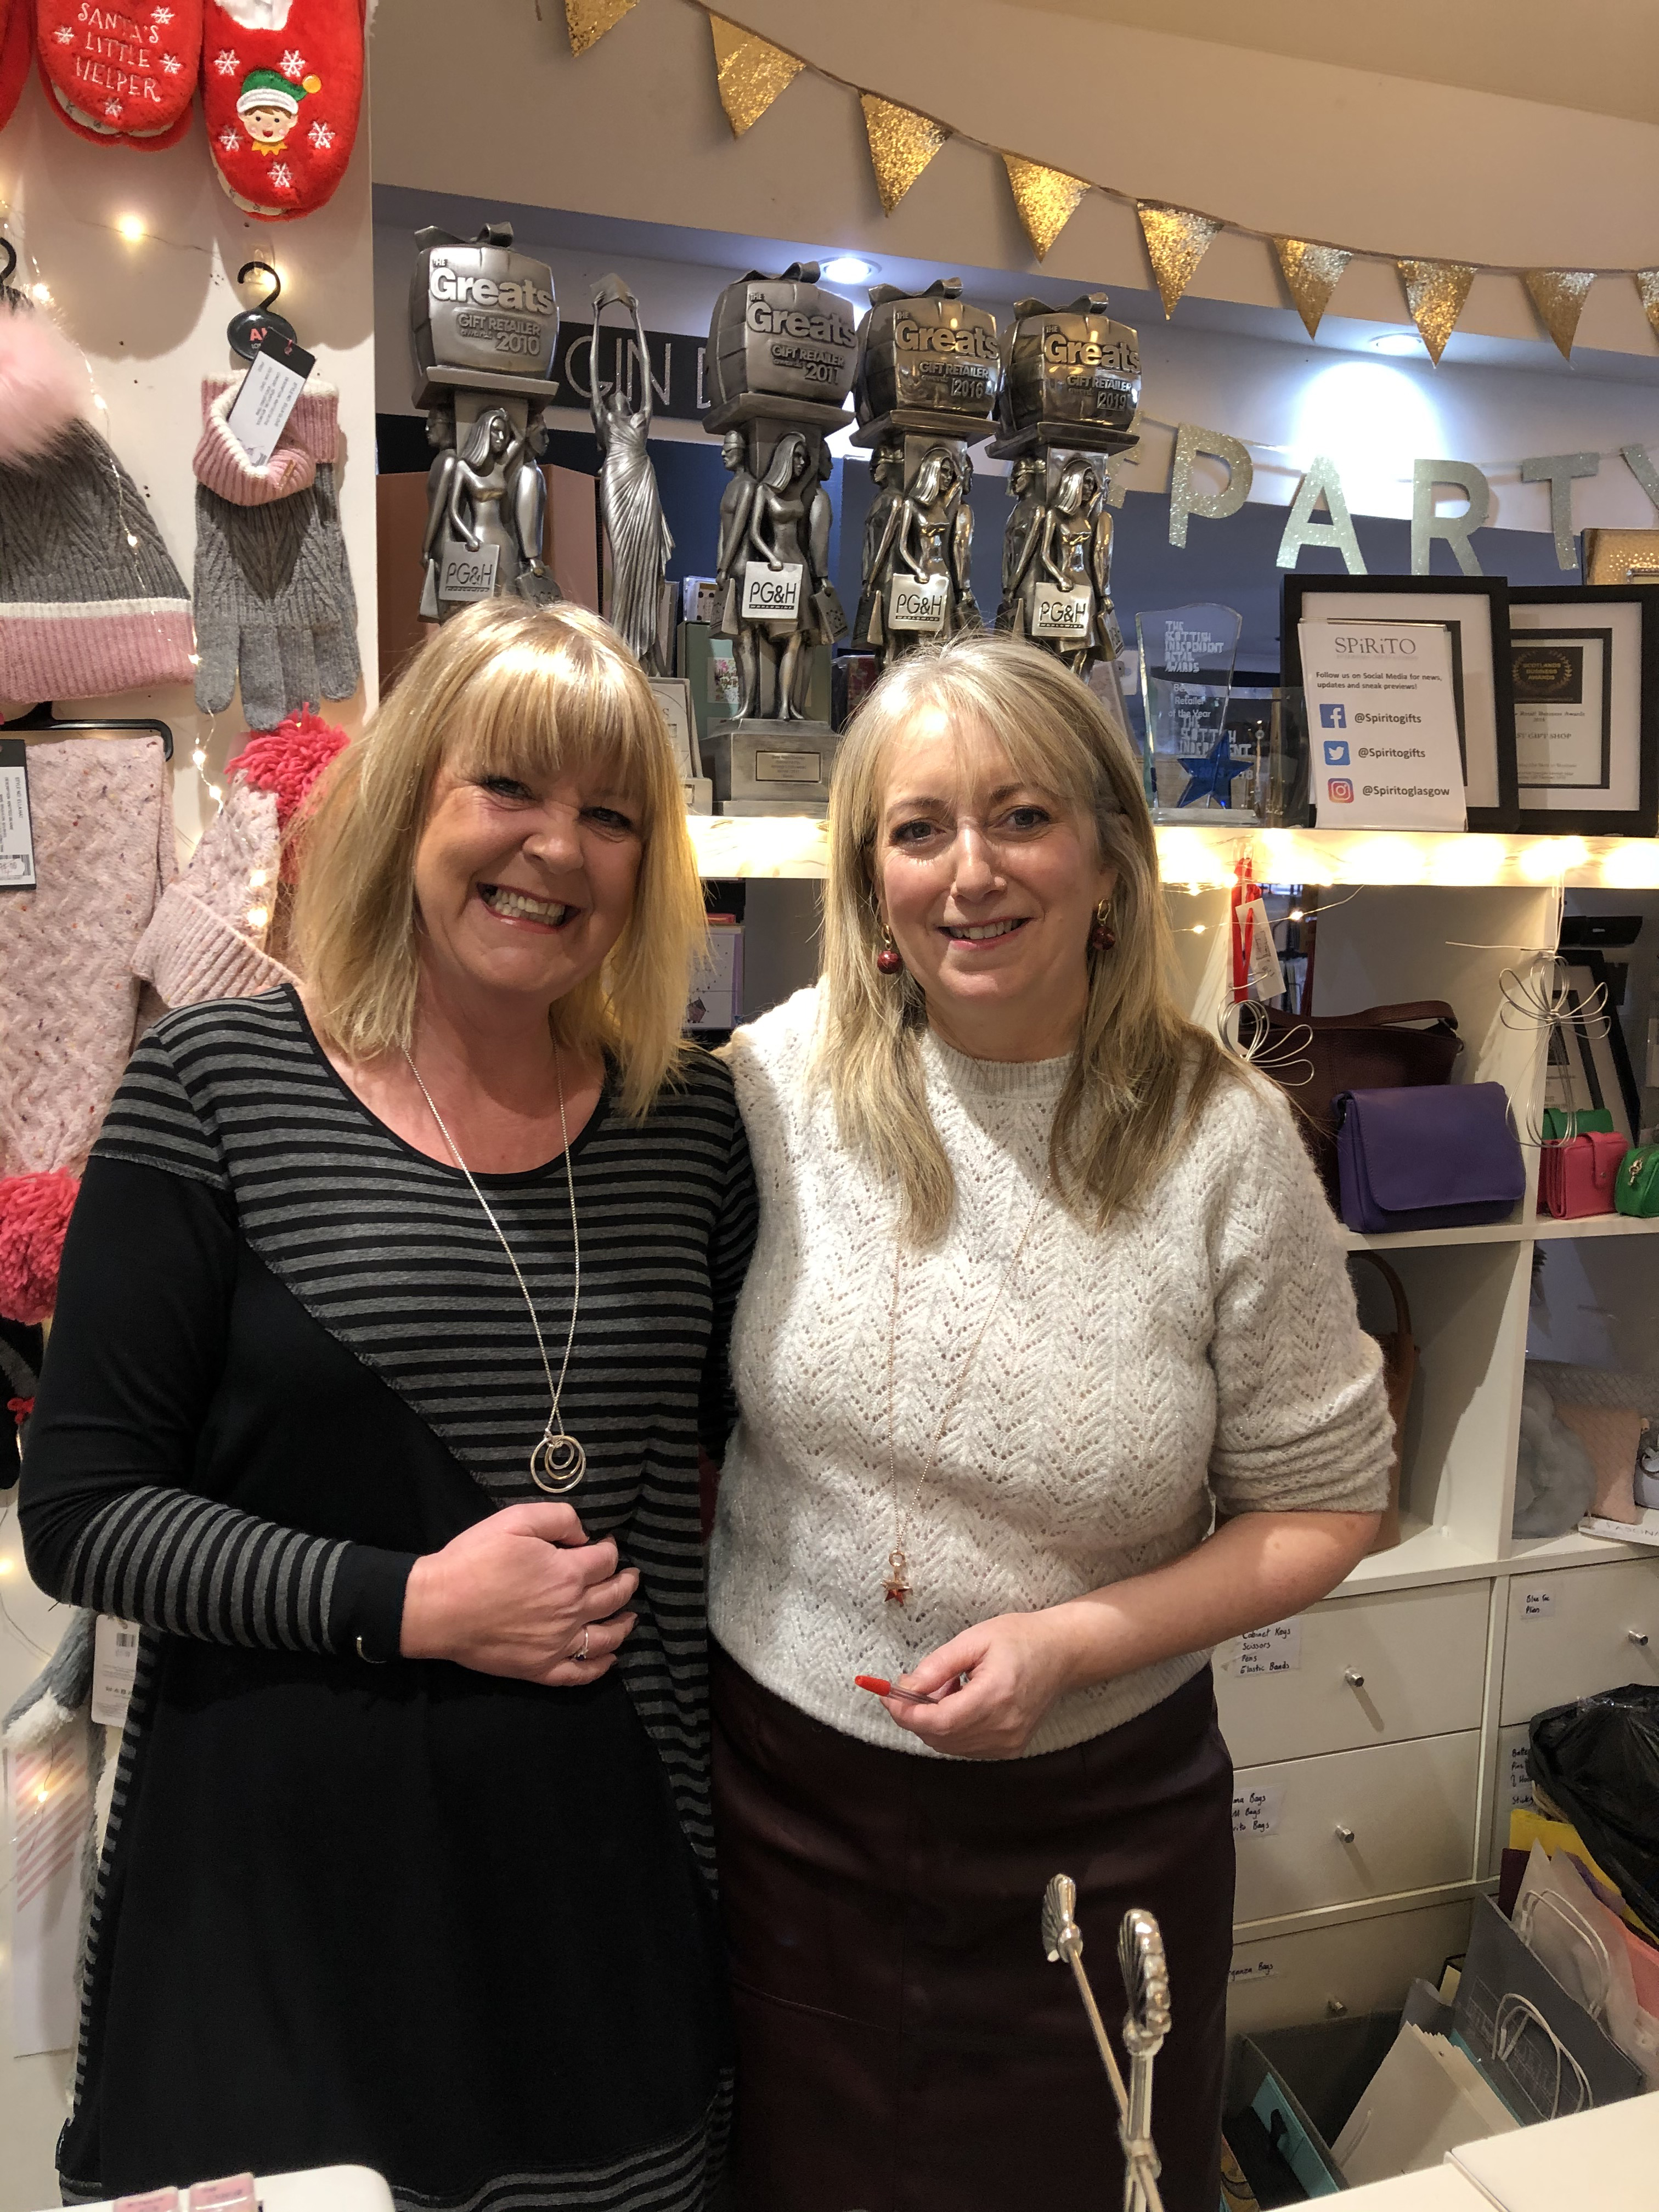 Above: Corinne Forbes (left) with retail customer, Denise Laird of Spirito, Glasgow.